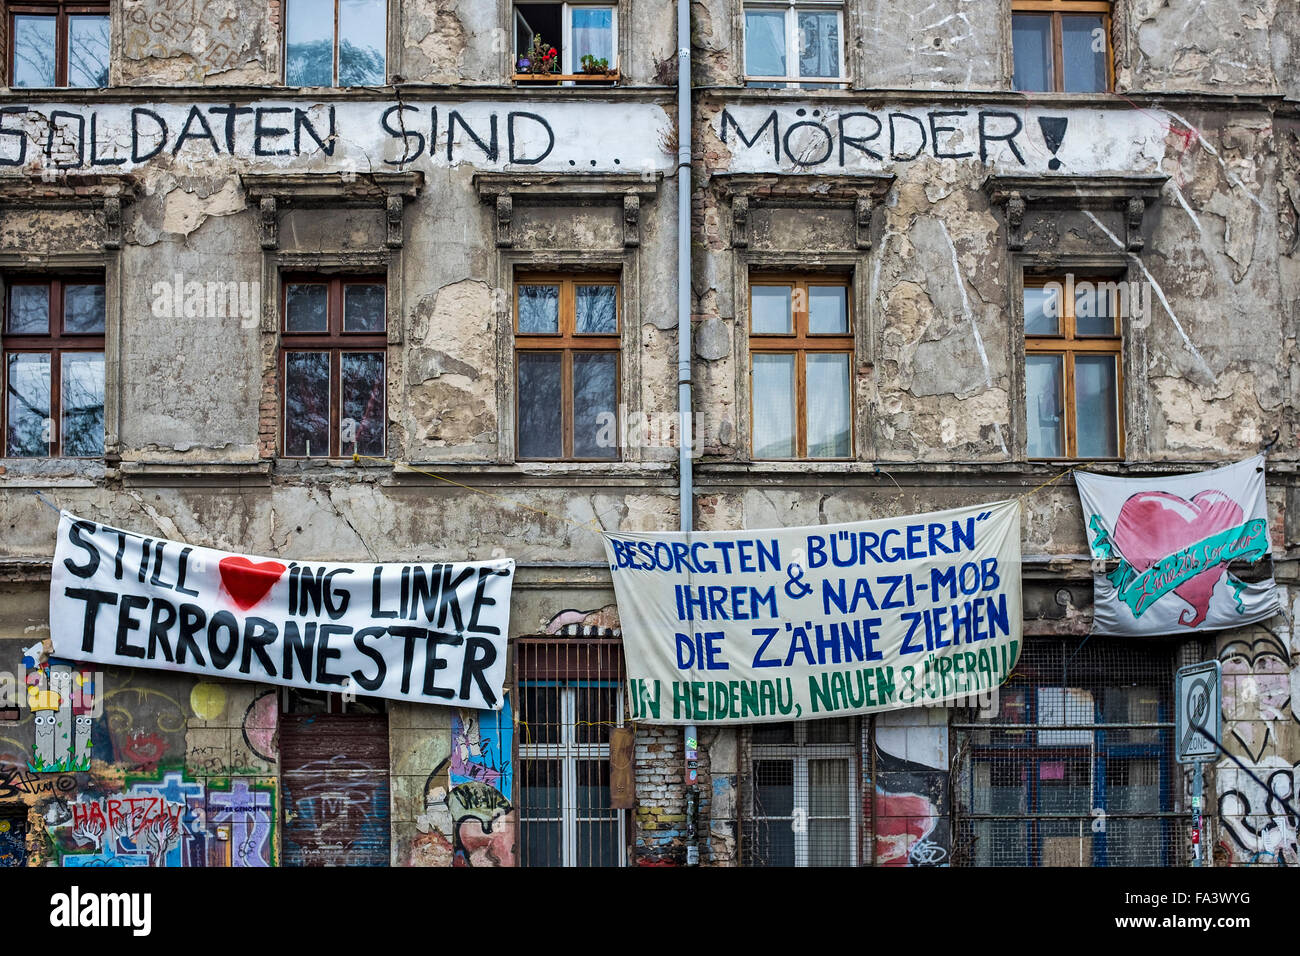 Berlin, Mitte, Linien strasse. Decrepit, dilapitadated, graffitti-covered building occupied by squatters - Stock Image